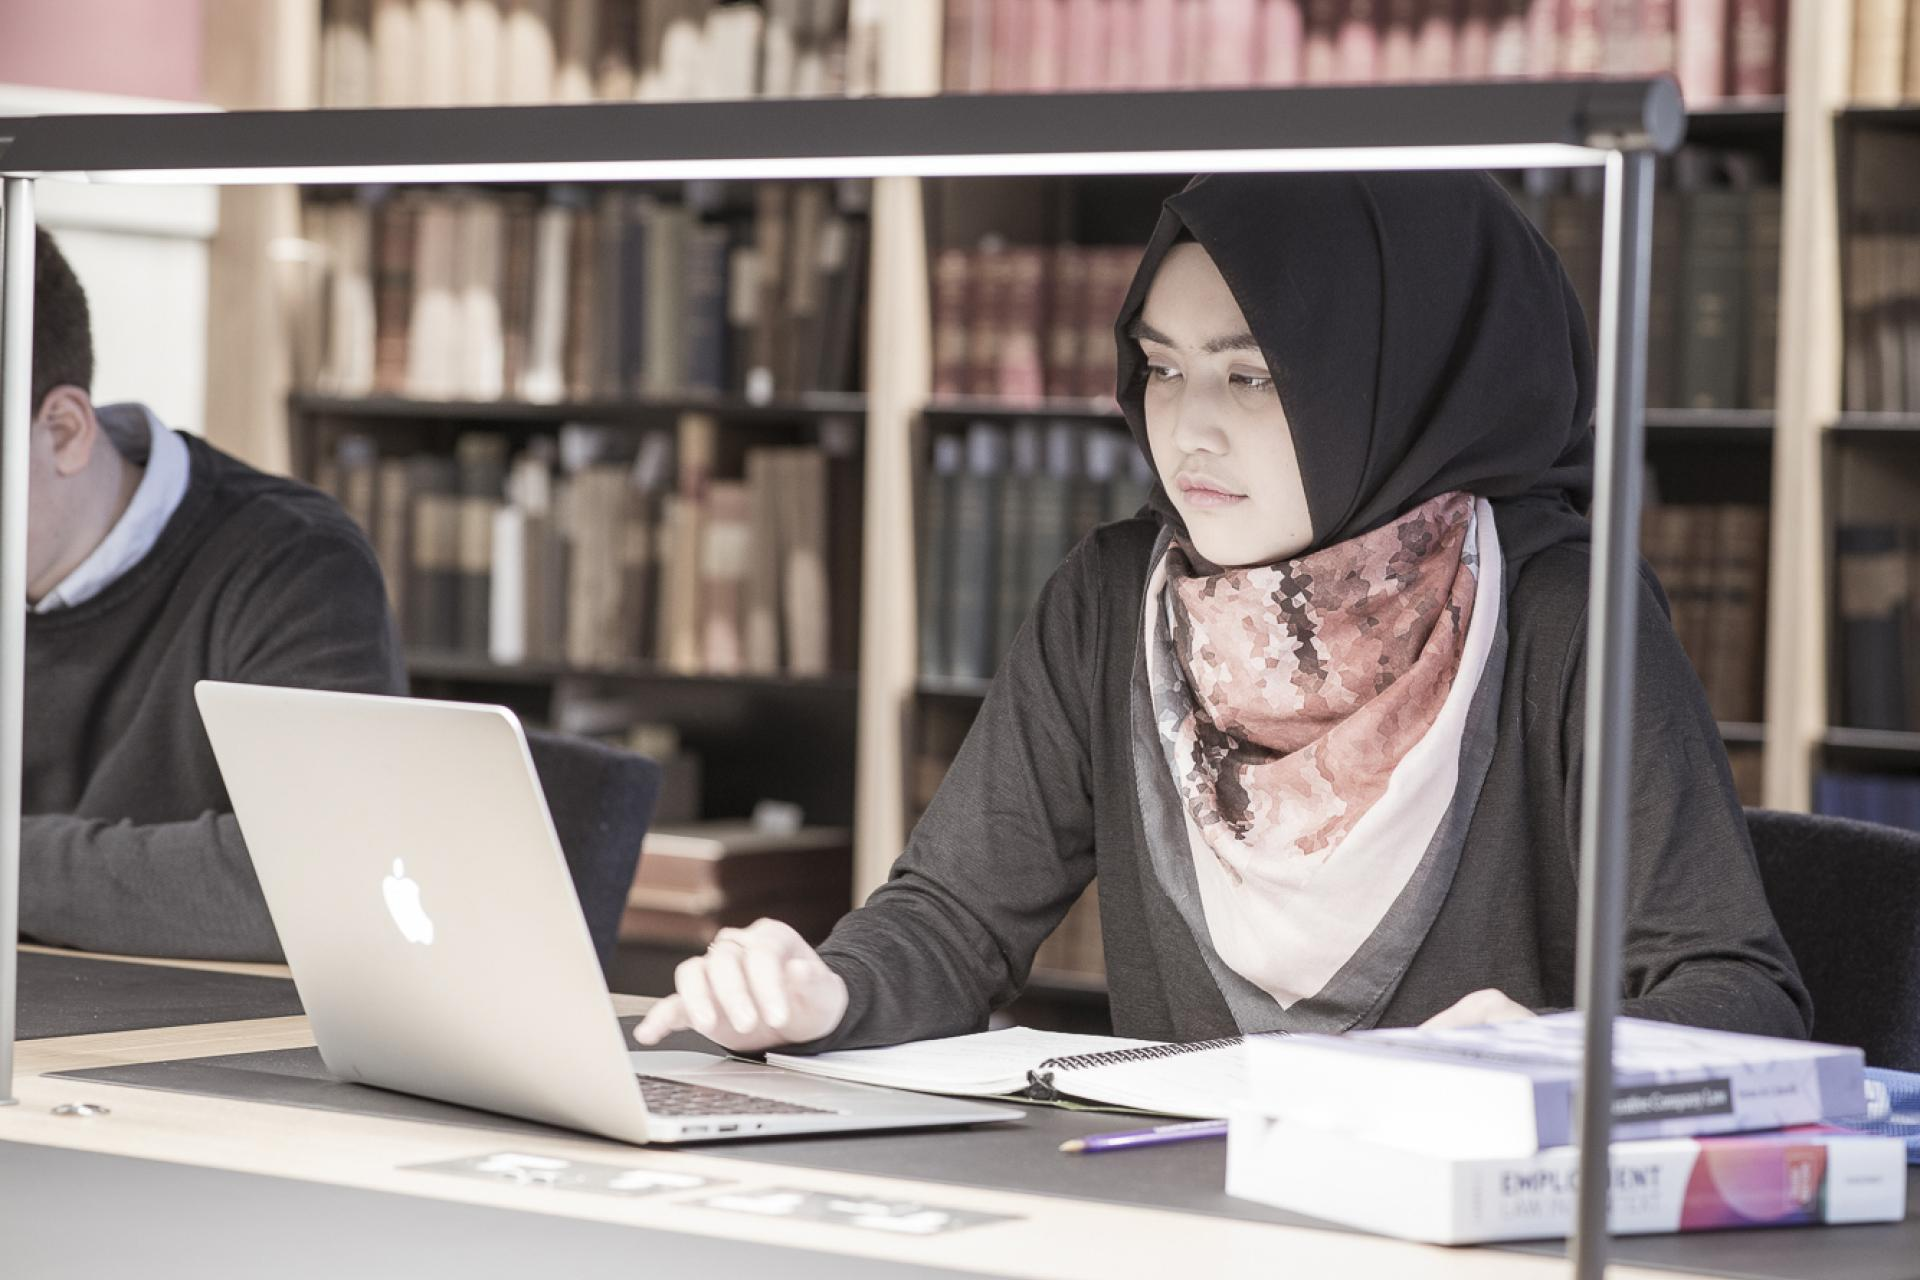 Woman on laptop in library